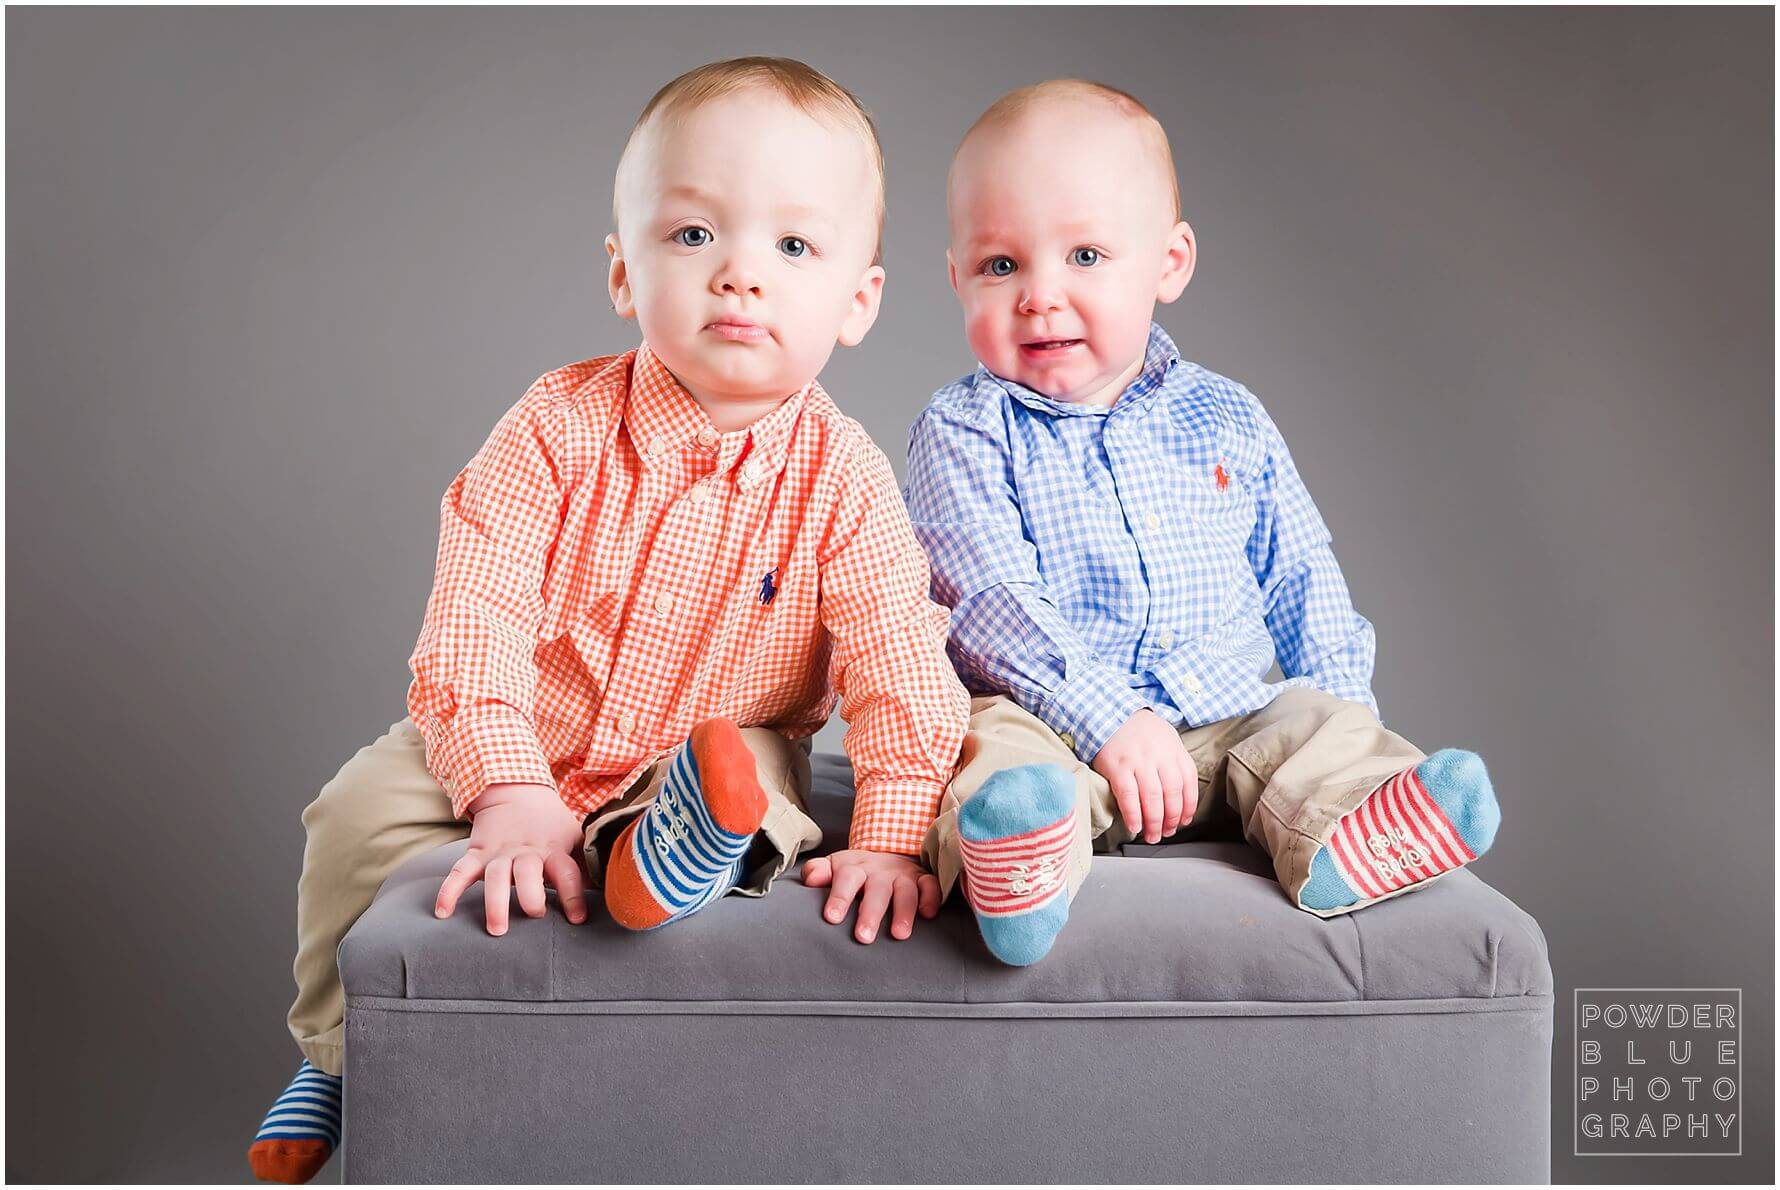 one year old twins studio portrait ralph lauren collared button down shirts toddler kids orange & blue